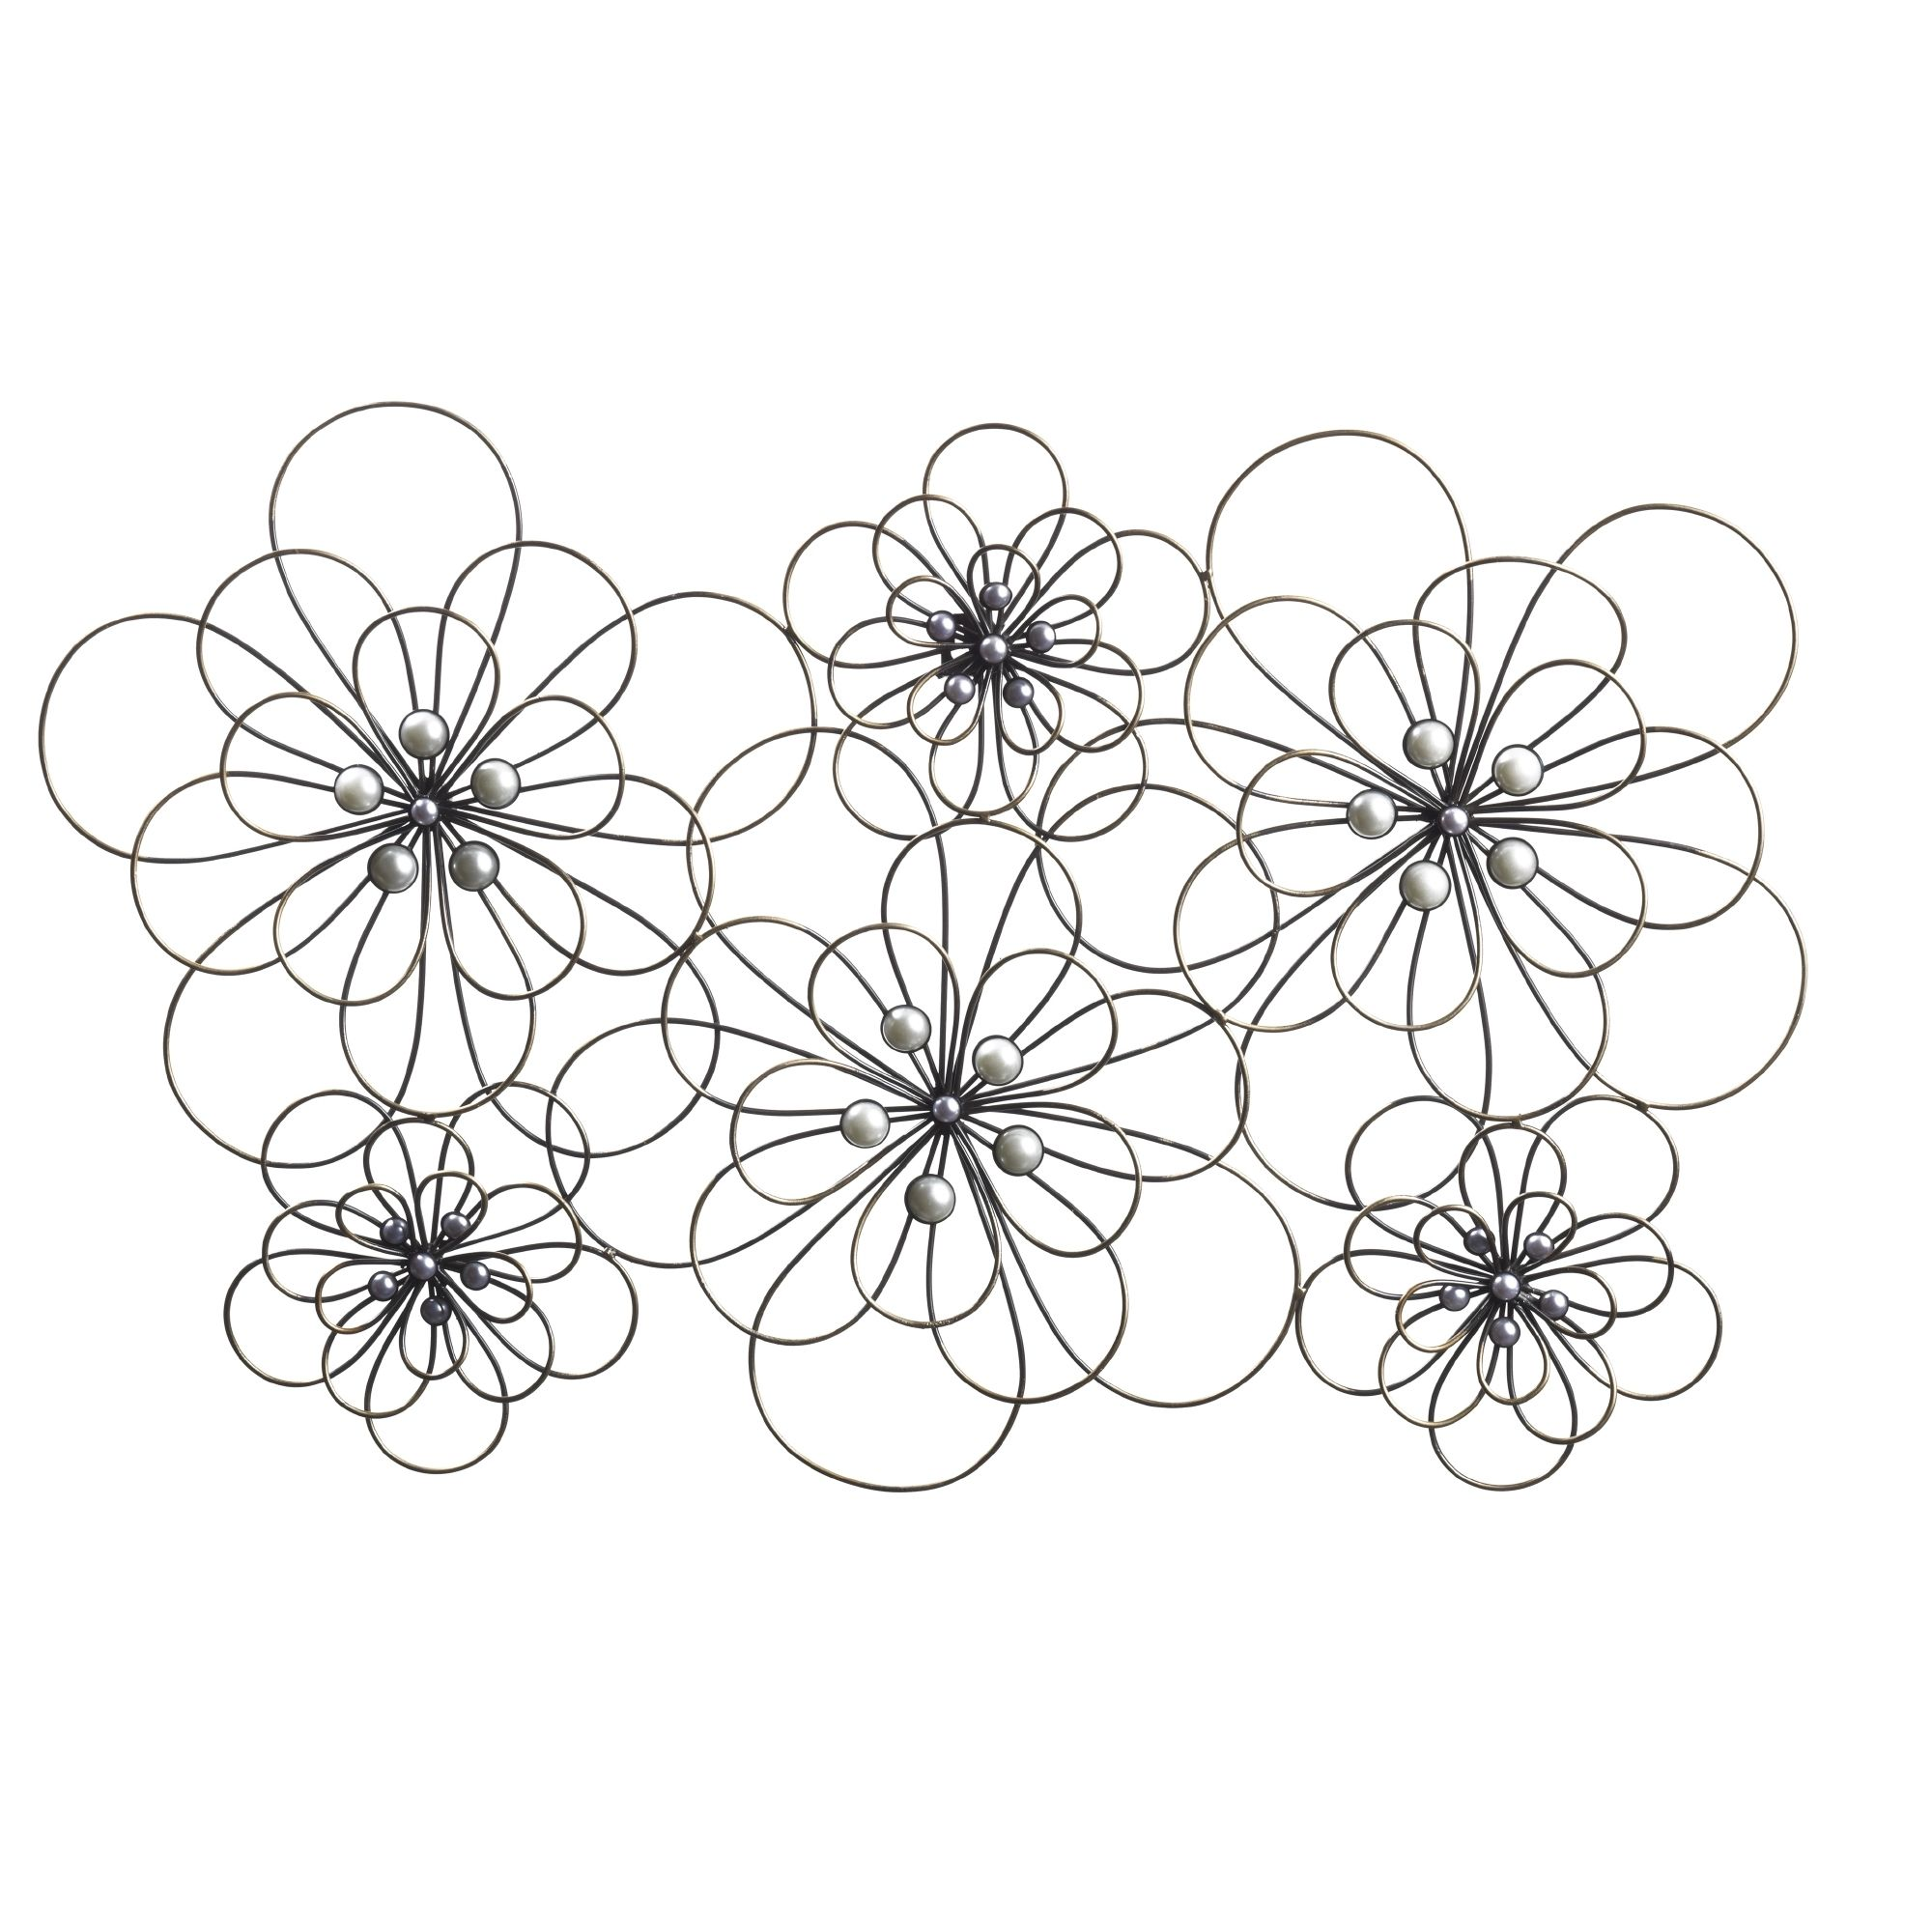 This Elements wire flowers metal wall decor features a striking pinwheel design that is sure to capture the eye. The collage of large wire frame flowers is accented with pearlized beads for a subtle and sophisticated look.